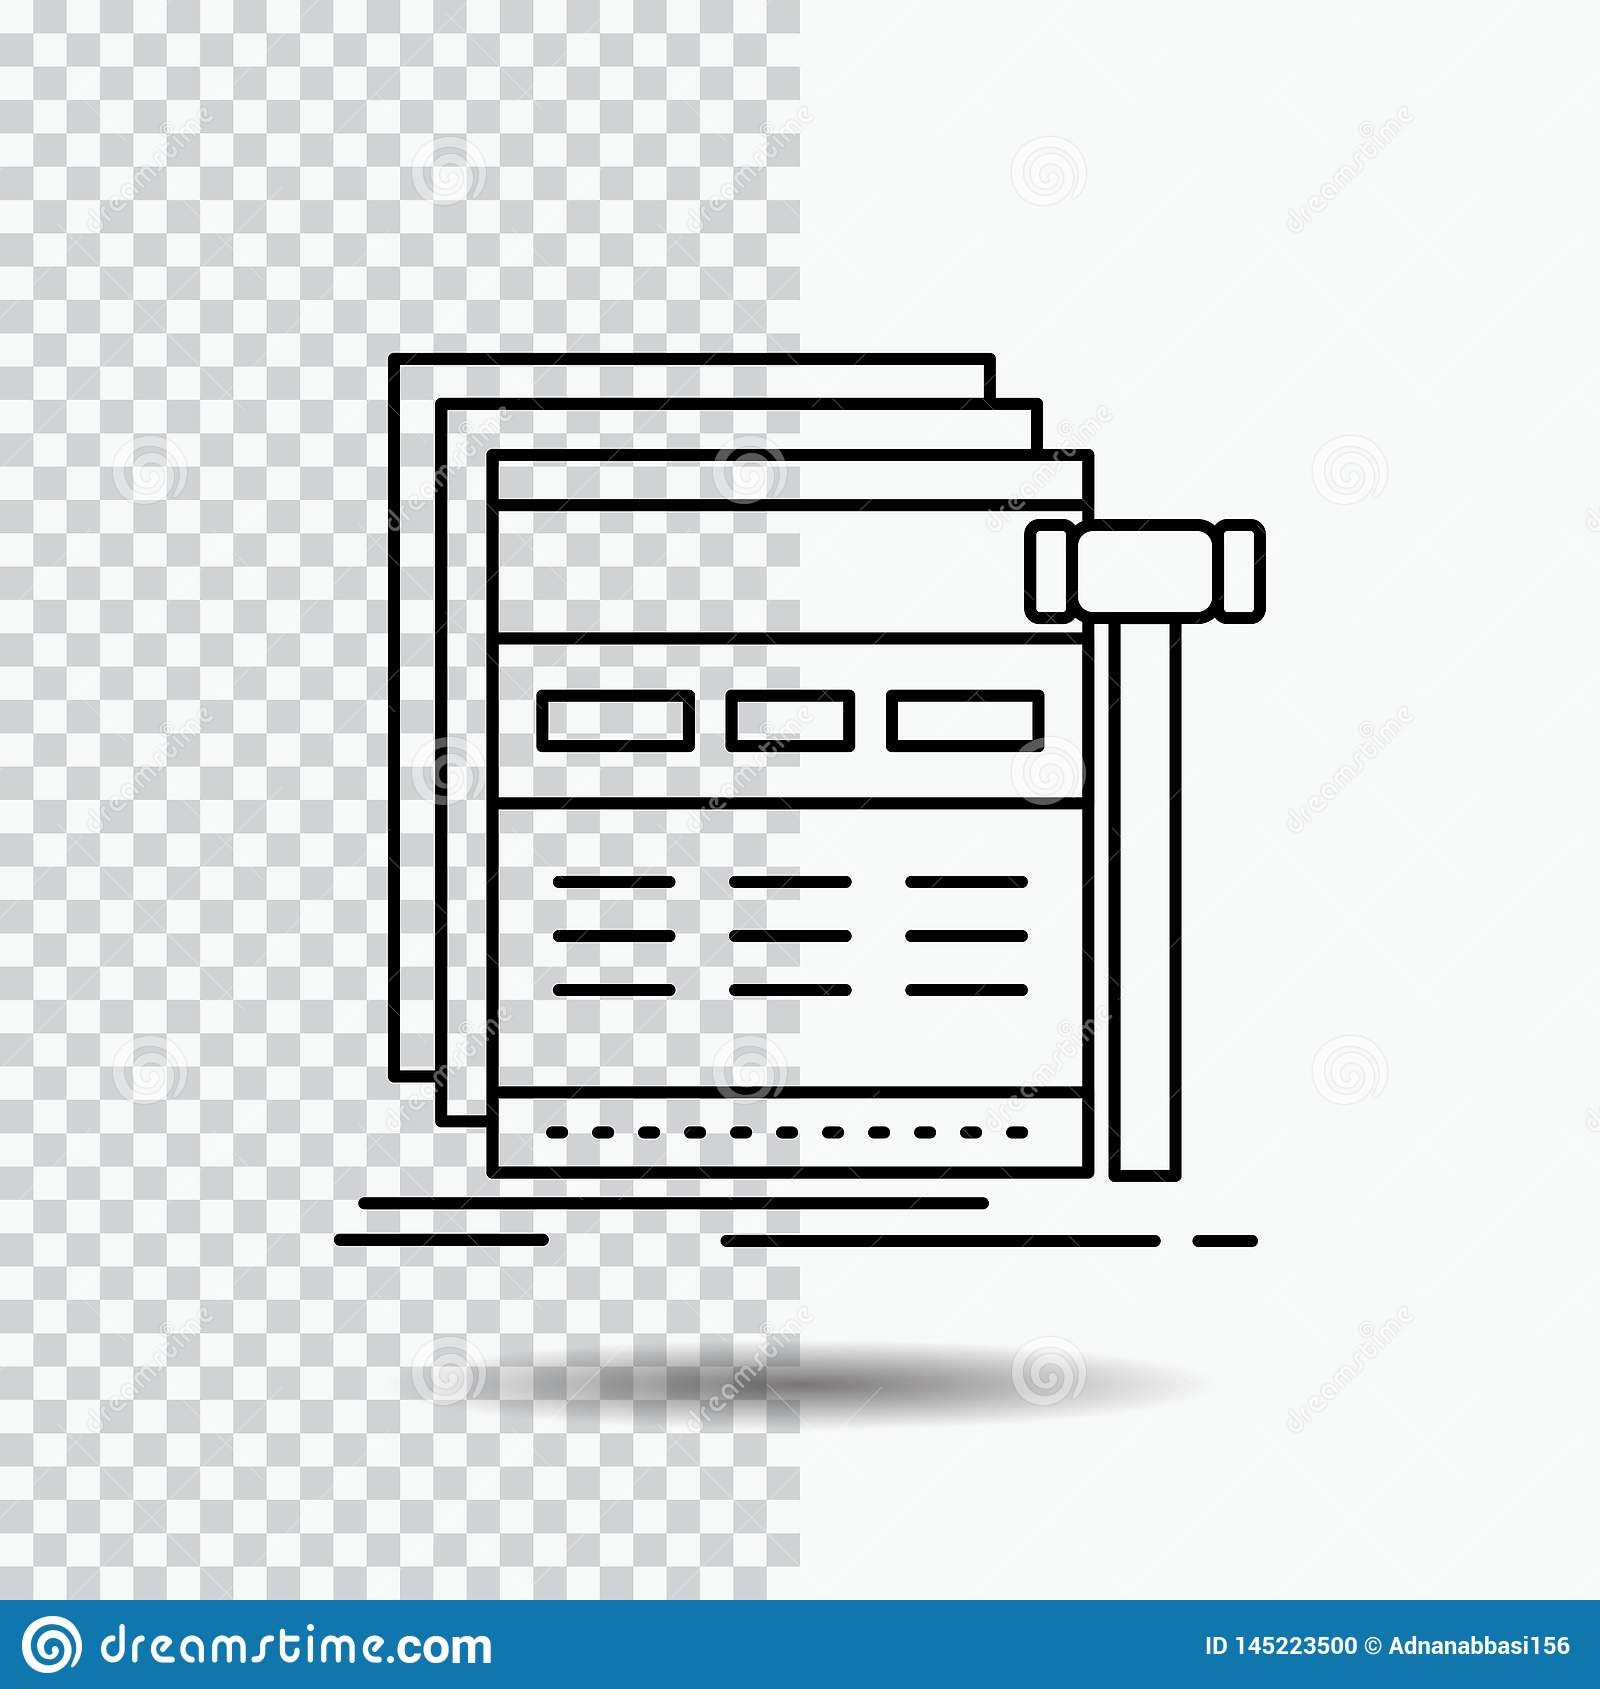 Internet, page, web, webpage, wireframe Line Icon on Transparent Background. Black Icon Vector Illustration